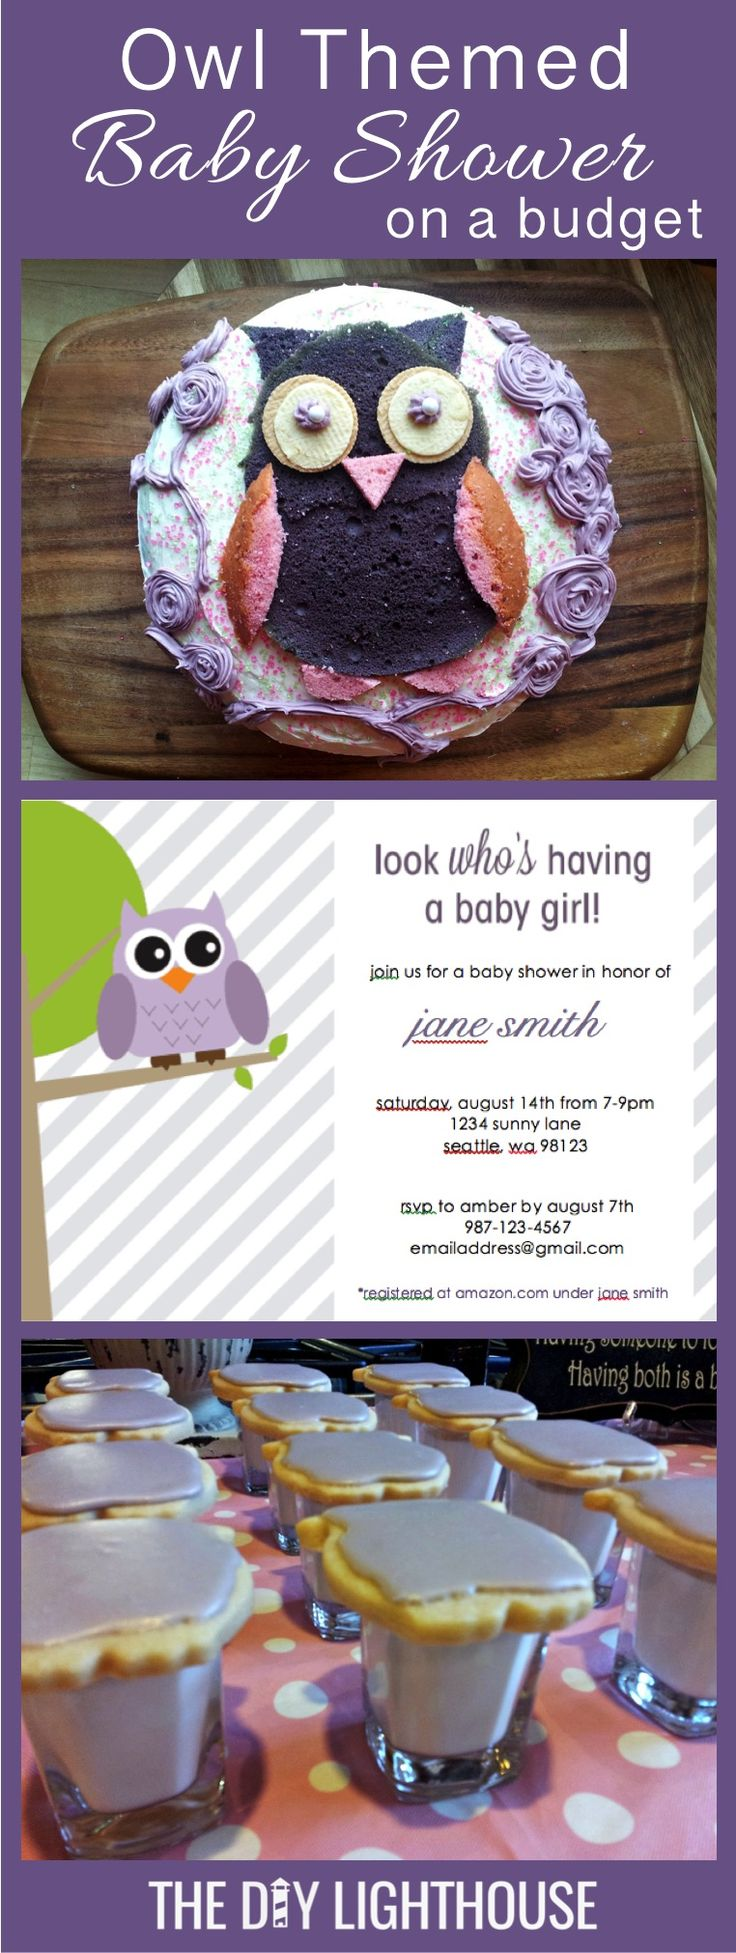 Owl themed baby shower on a budget! Ideas and inspiration for throwing an owl themed baby shower. Invitations, food, decor, and party favor ideas on The DIY Lighthouse.